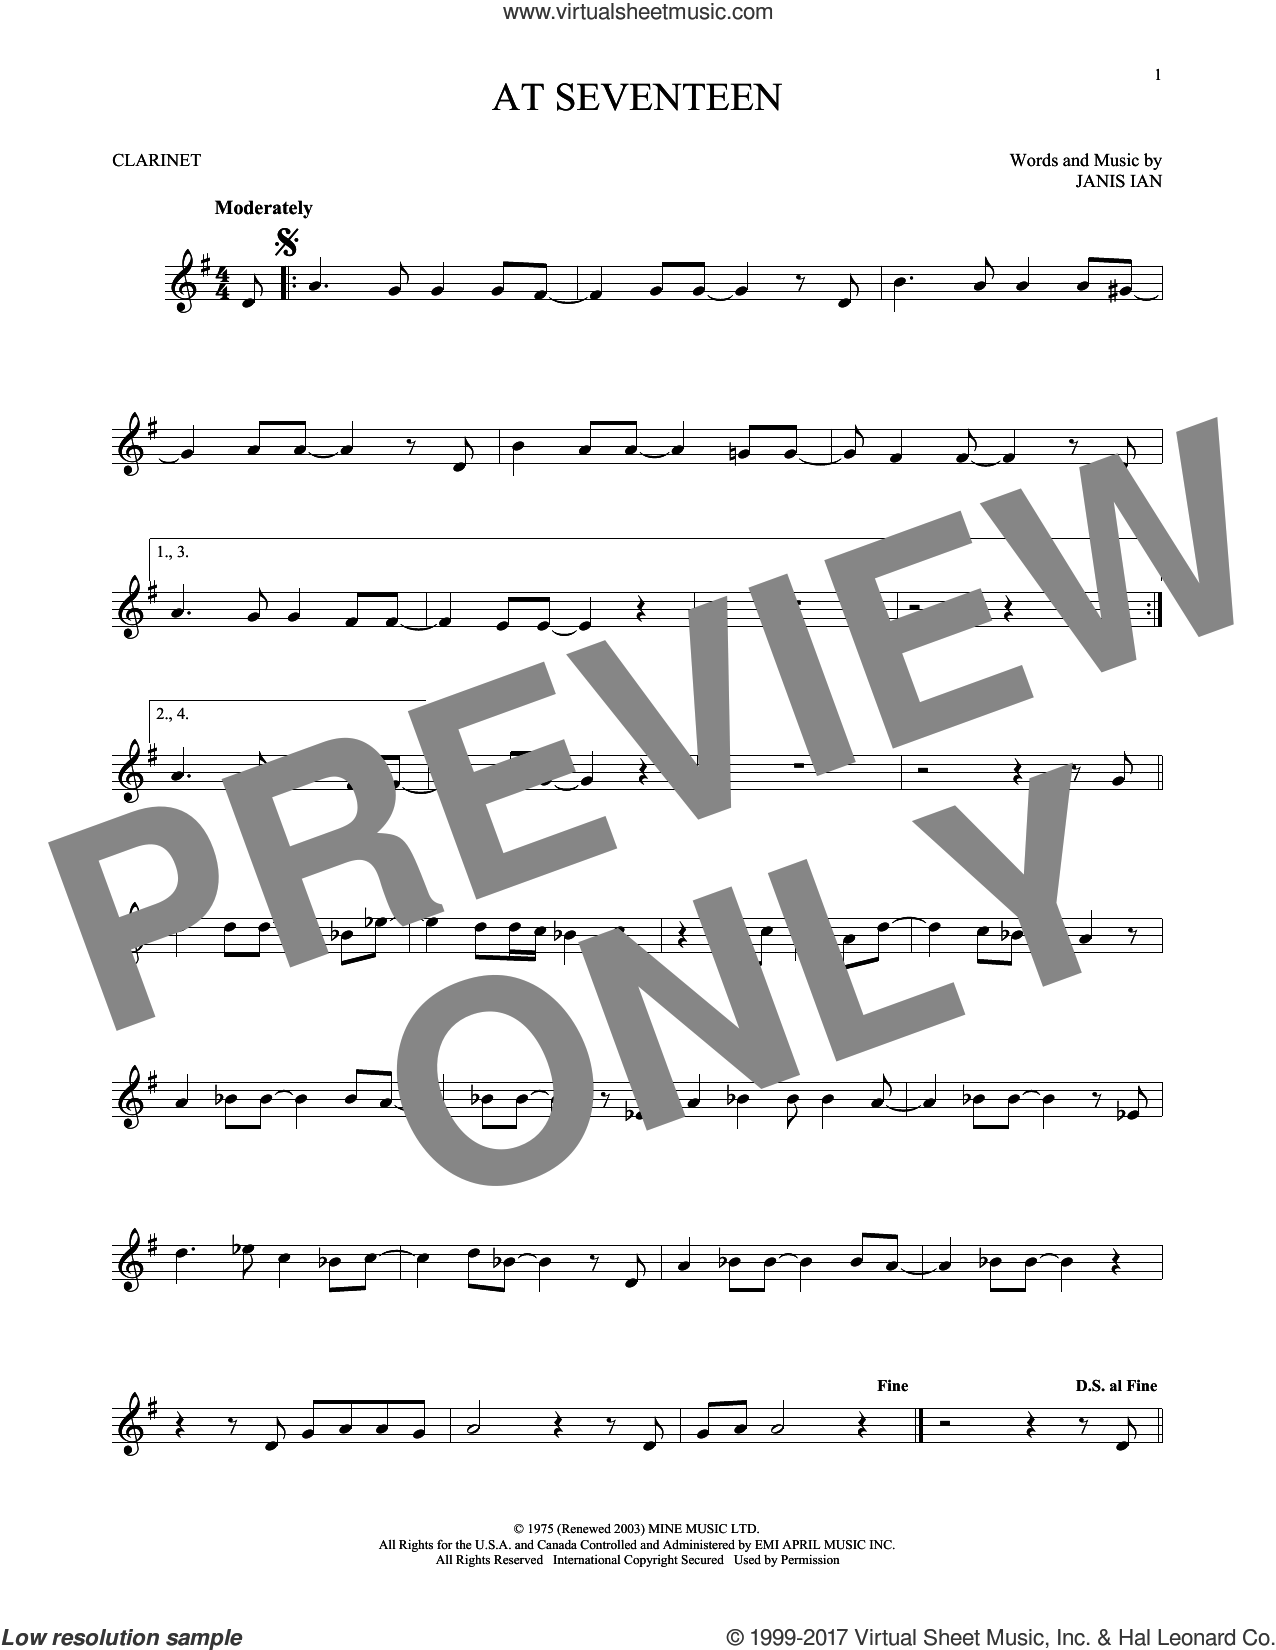 At Seventeen sheet music for clarinet solo by Janis Ian, intermediate skill level